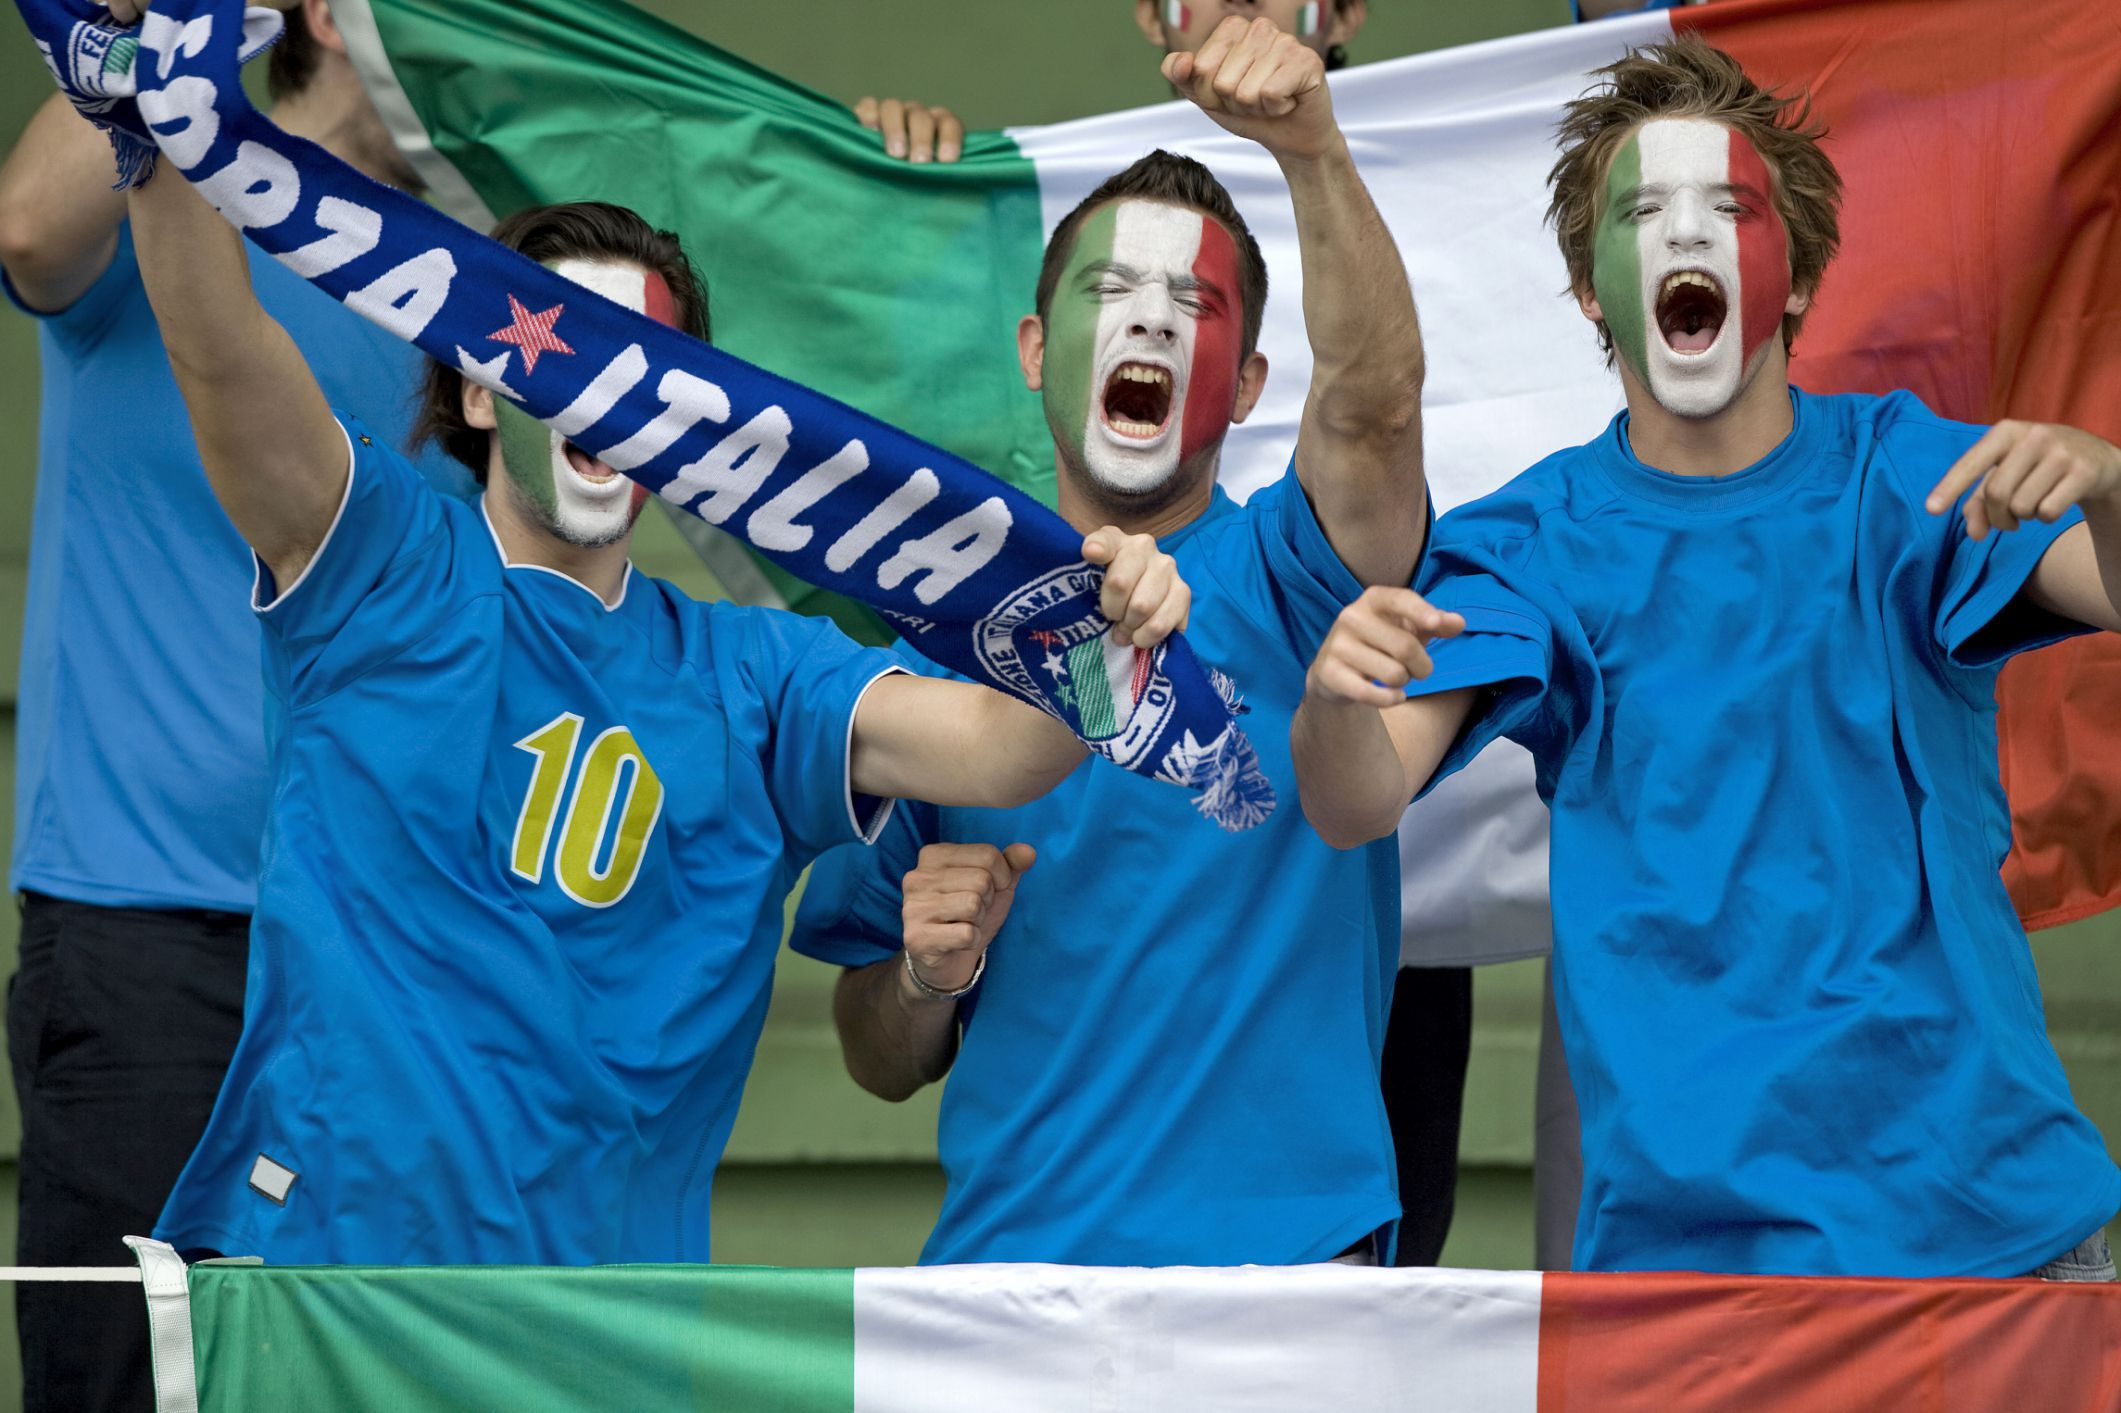 Wallpaper Volleyball Quotes Italy National Football Team Wallpapers